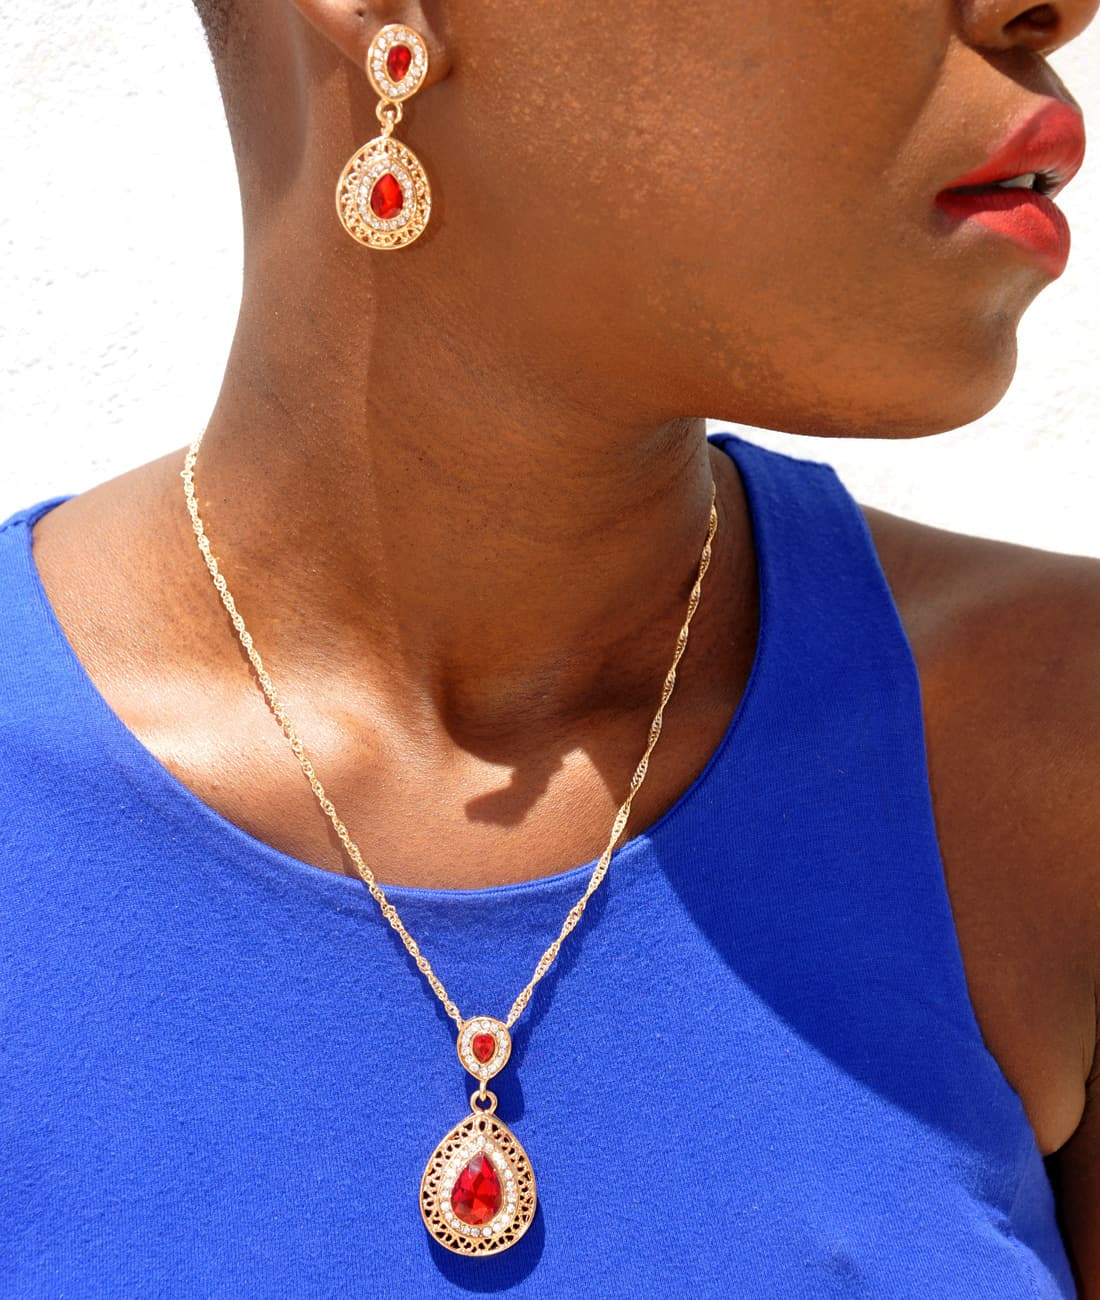 M0304 red6 Jewelry Accessories Jewelry Sets maureens.com boutique